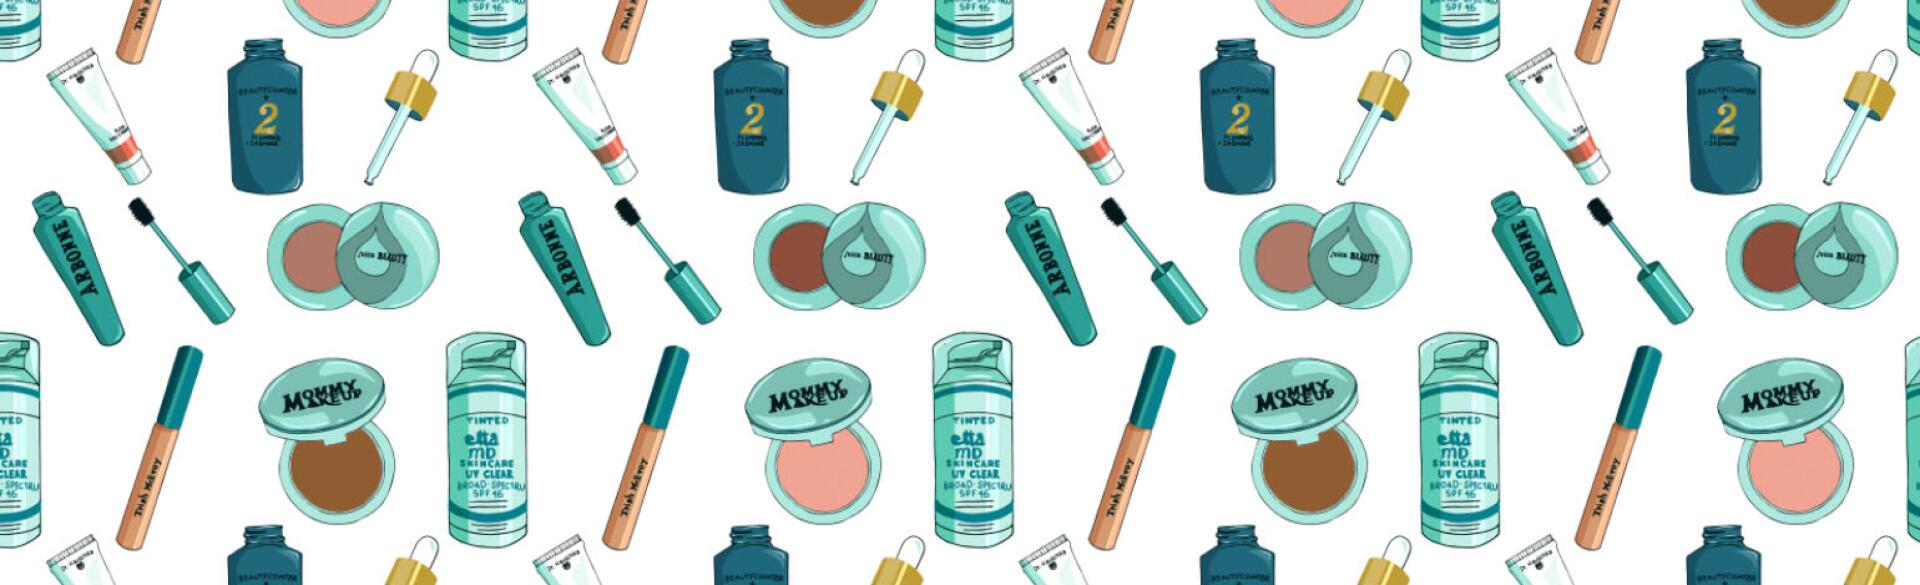 aarp, the girlfriend, newsletter, beauty, products